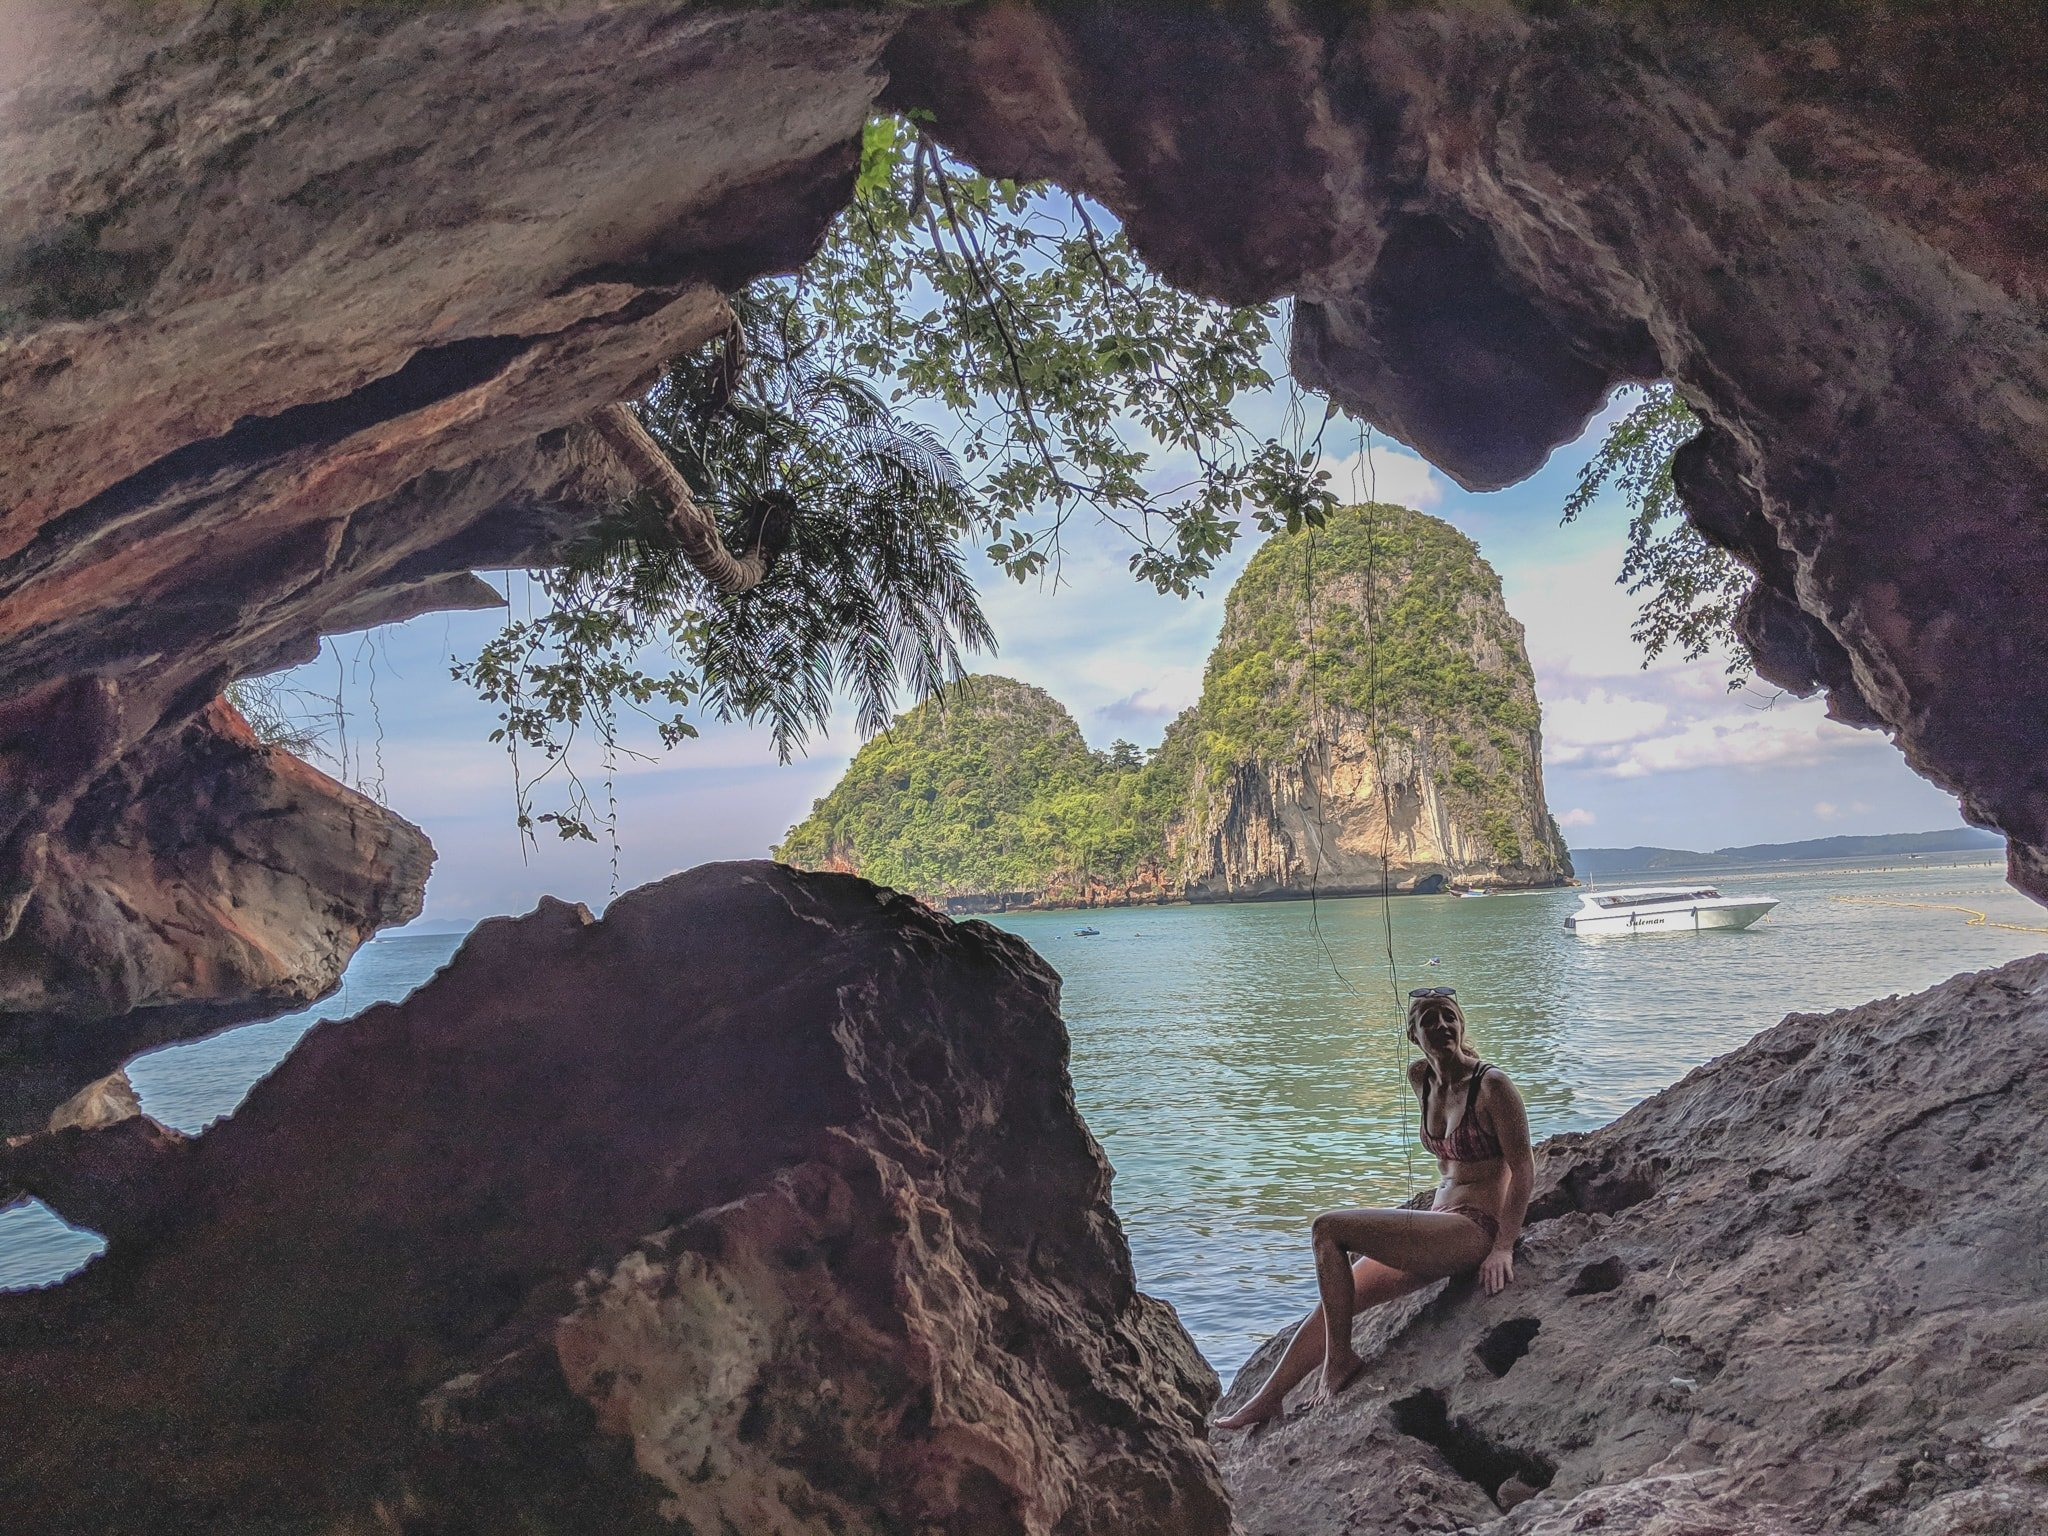 Sitting In A Cave Along The Beach In Krabi